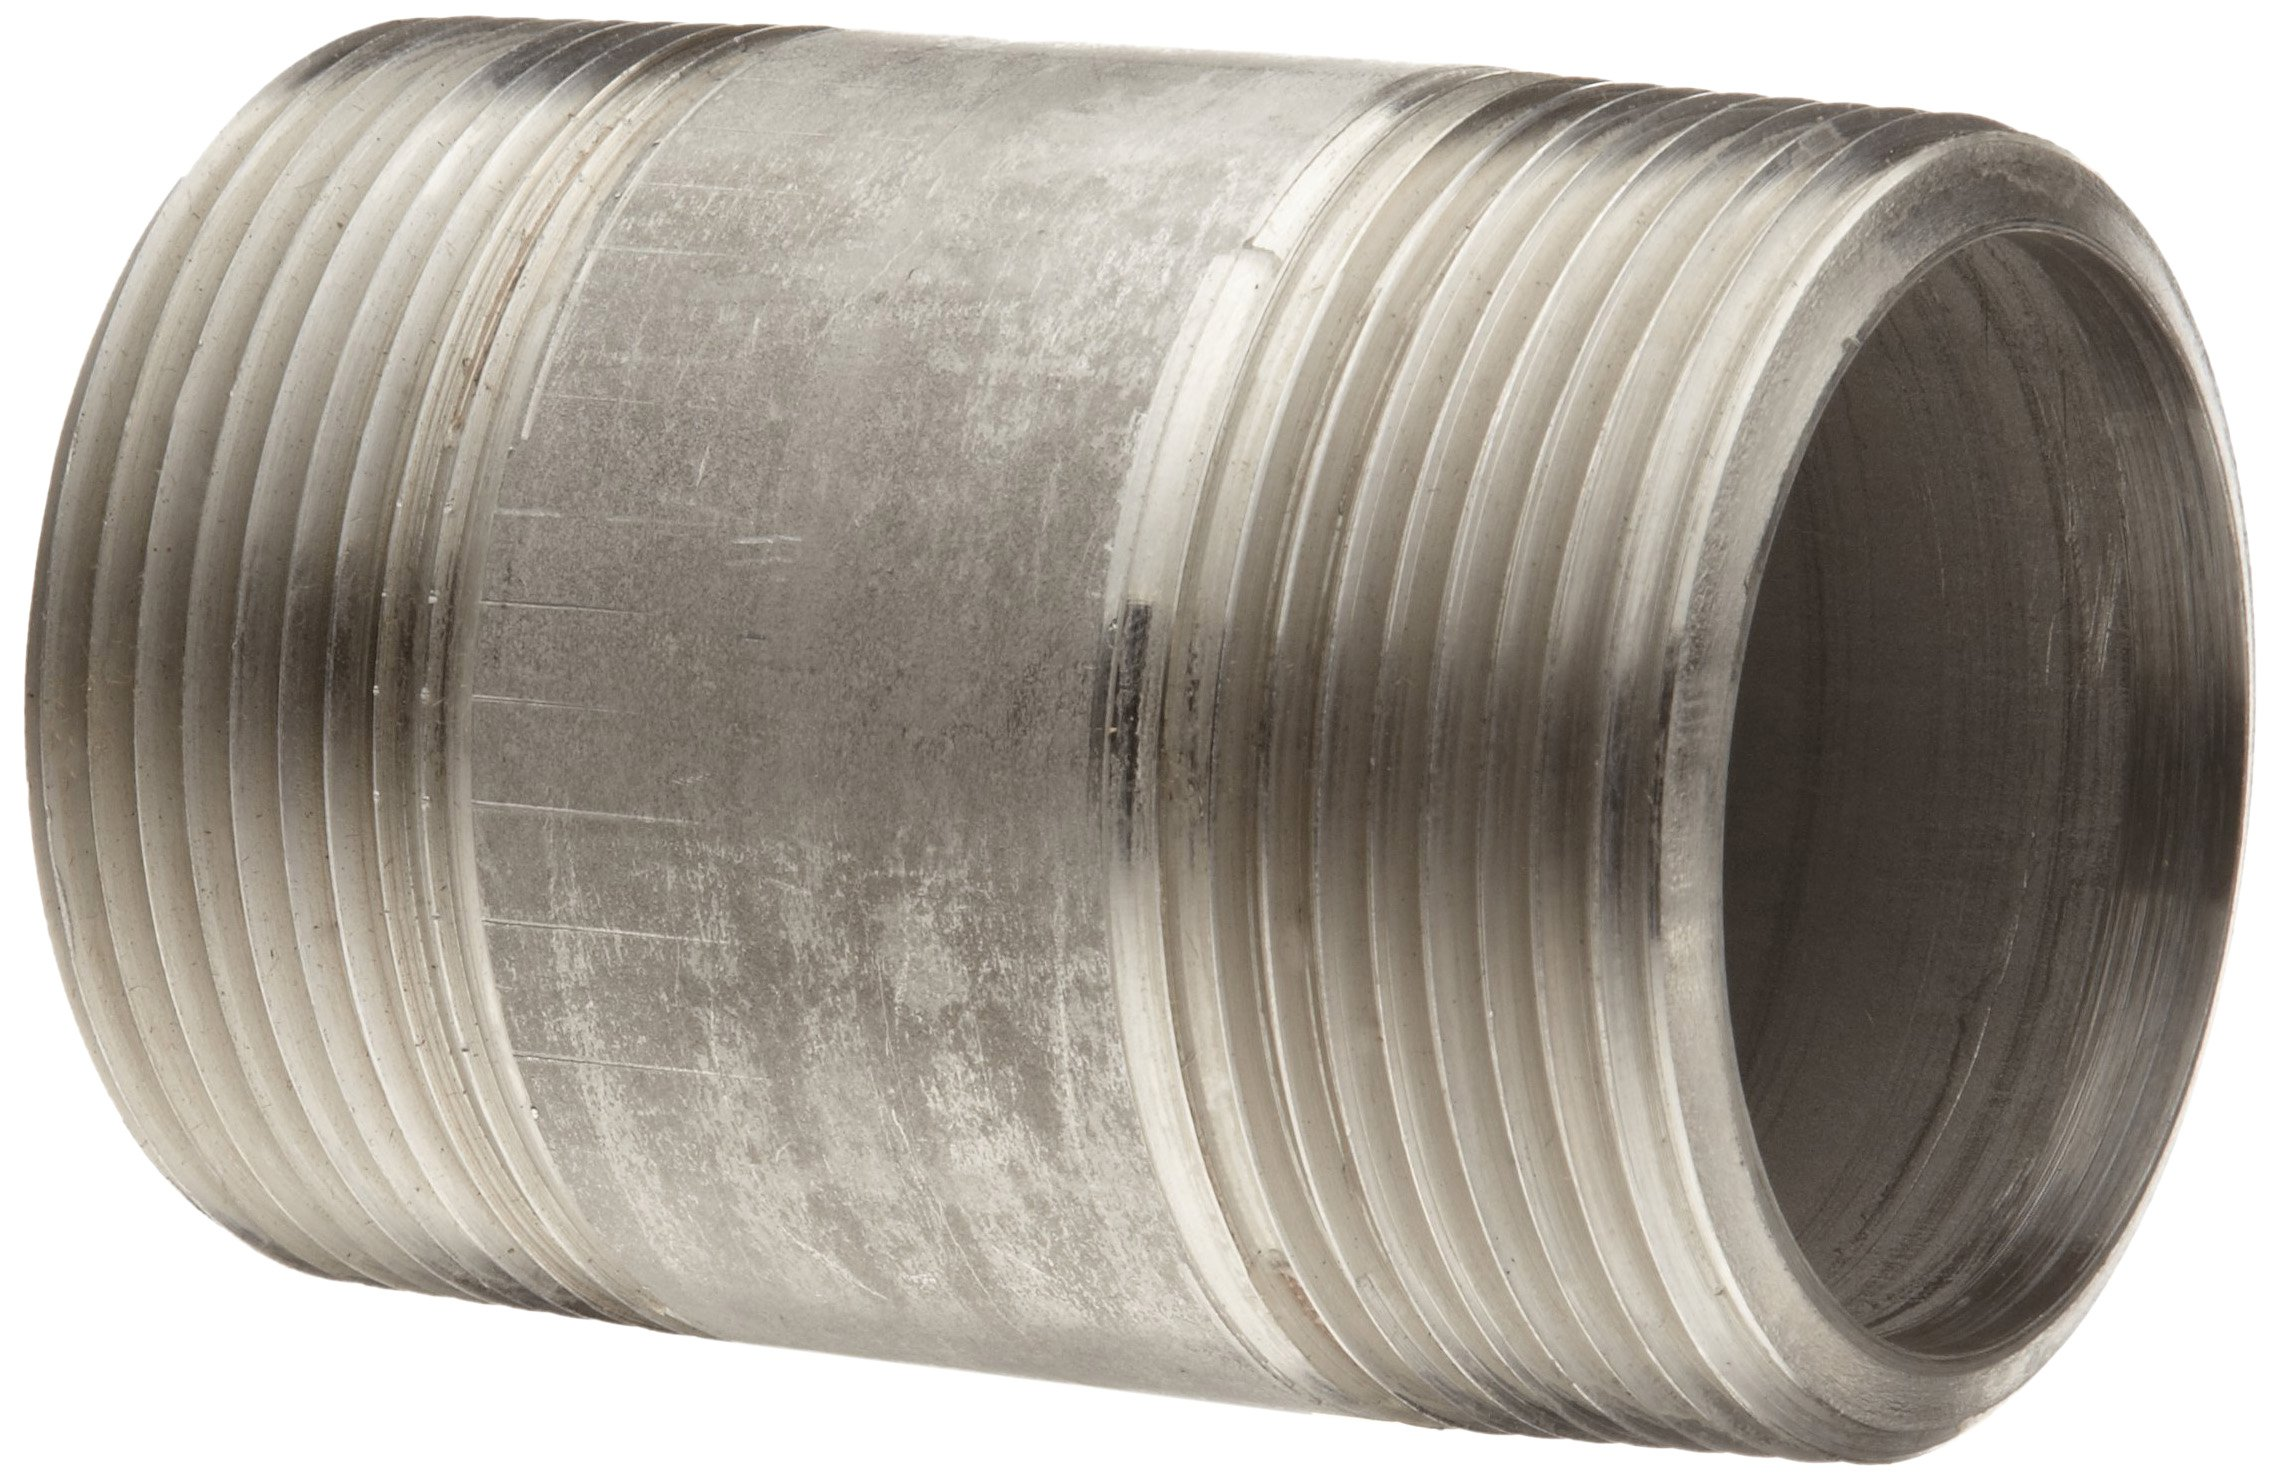 Stainless Steel 304/304L Pipe Fitting, Nipple, Schedule 80 Seamless Extra Heavy, 1/2'' X 1-1/2'' NPT Male